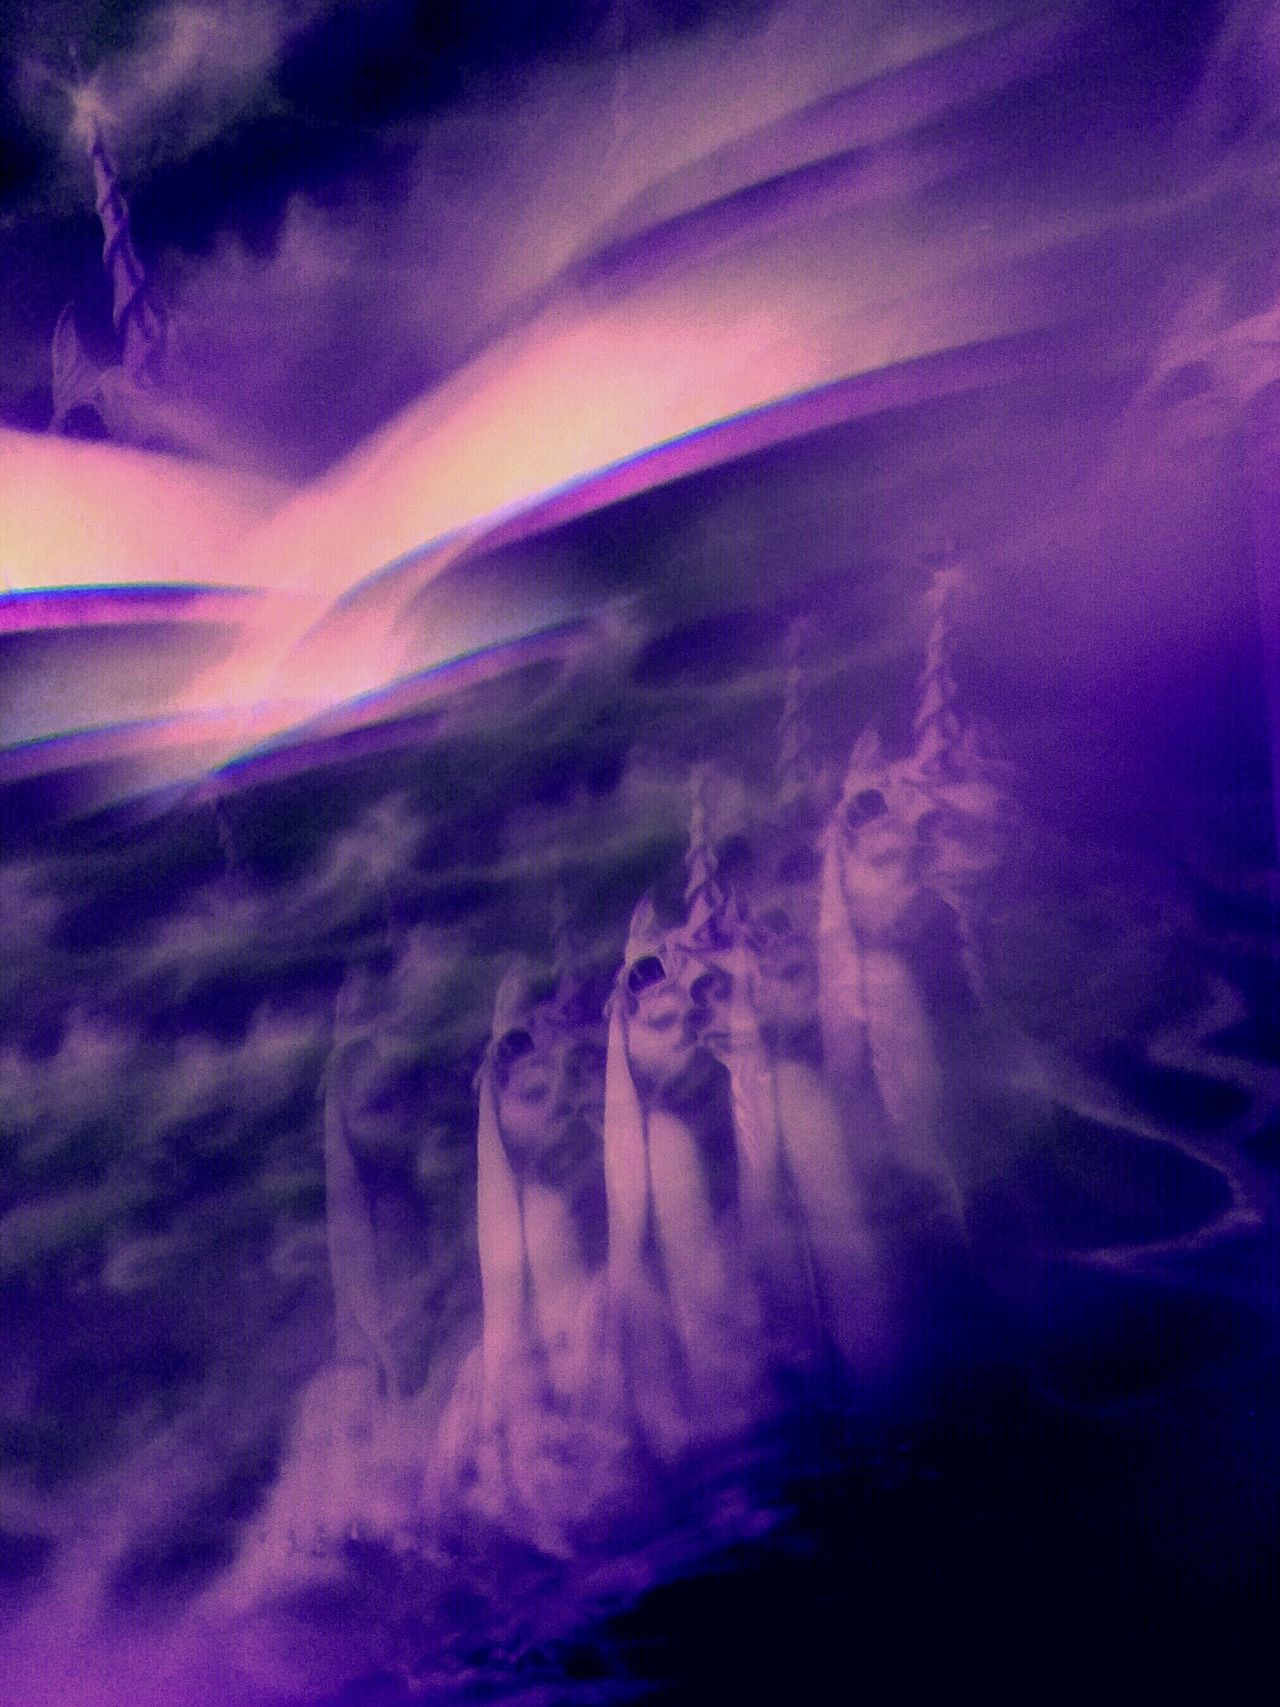 Abstract Unicornus Abstract Photography Experimental Fantasy Dreaming Fantasy Photography Purple The Visionary Unicorn Vision Close Up Technology MUR On EyeEm